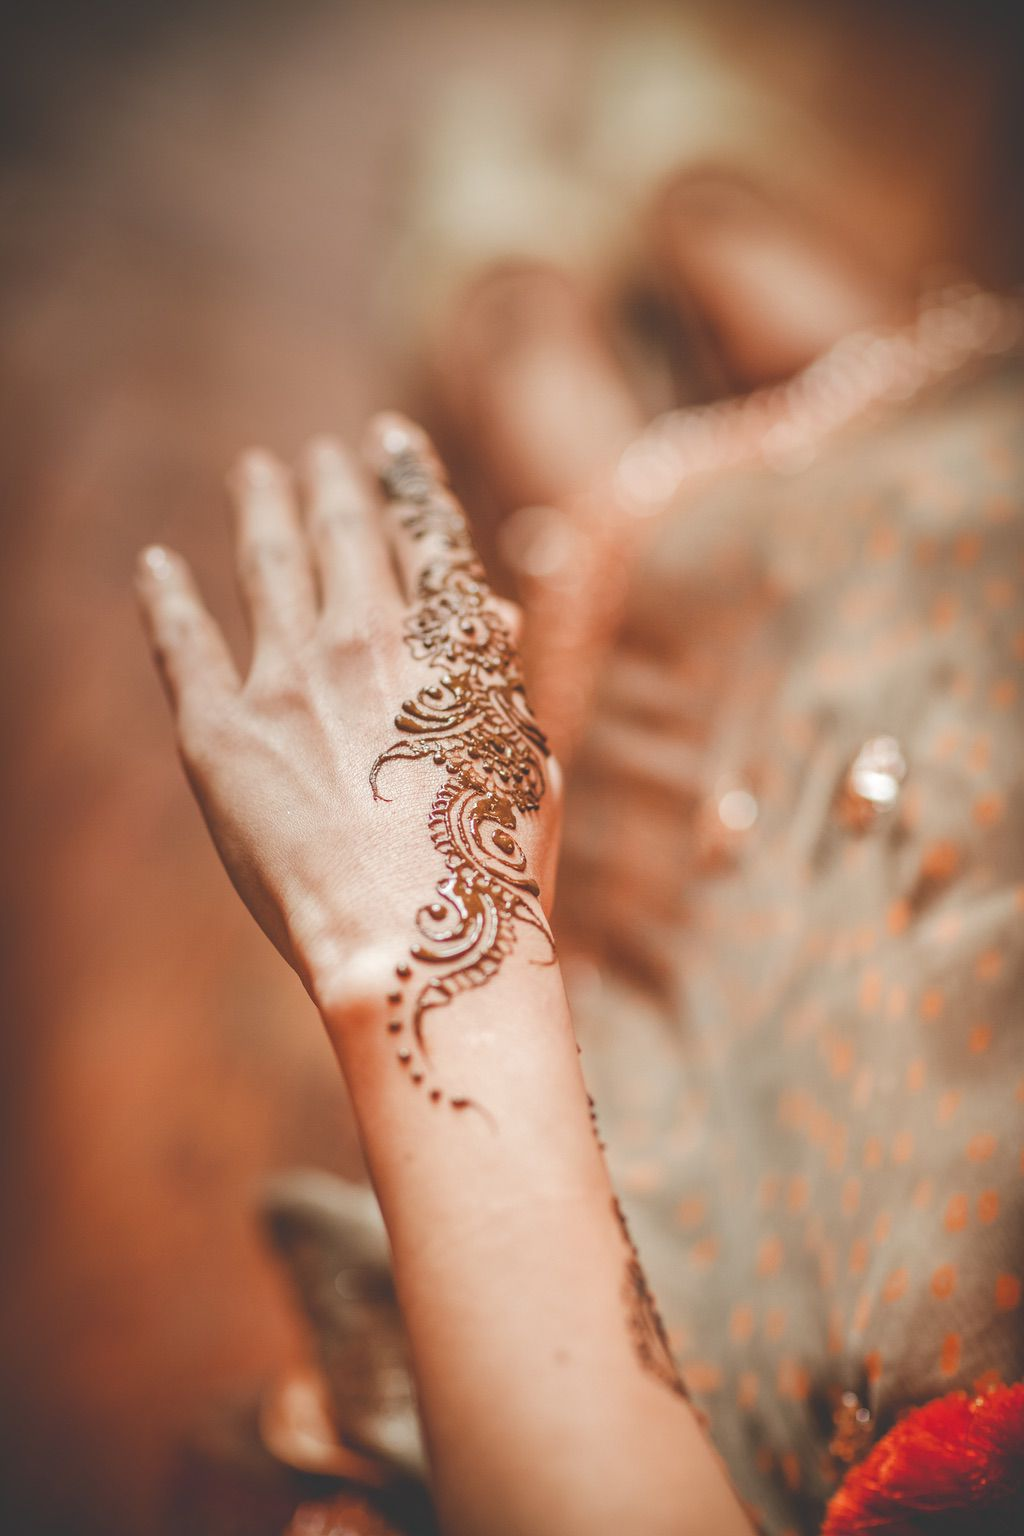 henna-hand-painting-pakistani-wedding-bride